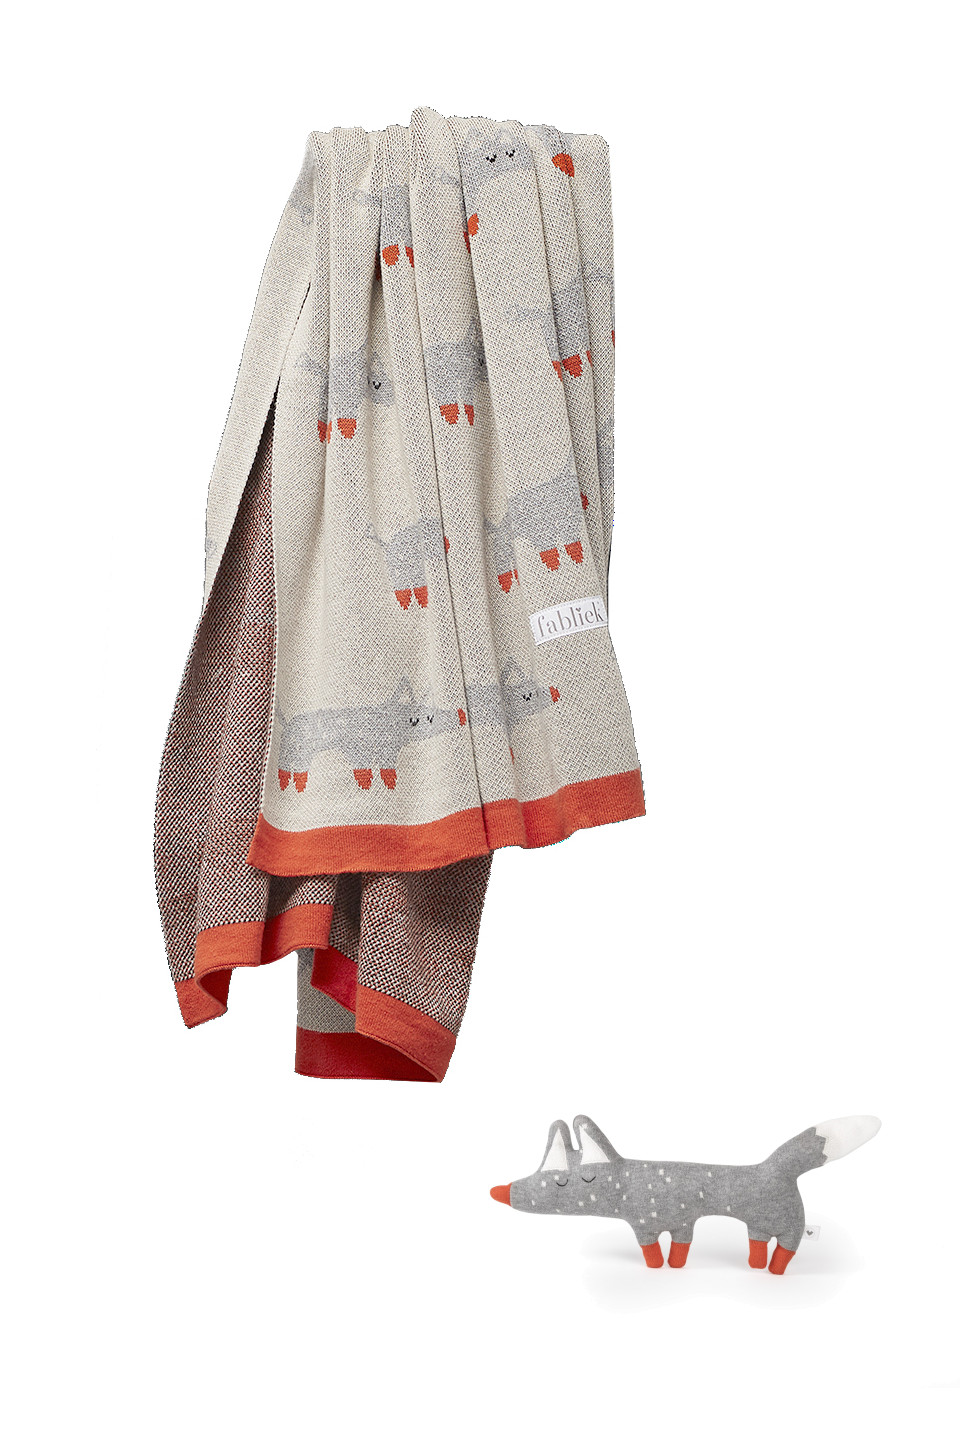 Plaid enfant en coton bio - Renards